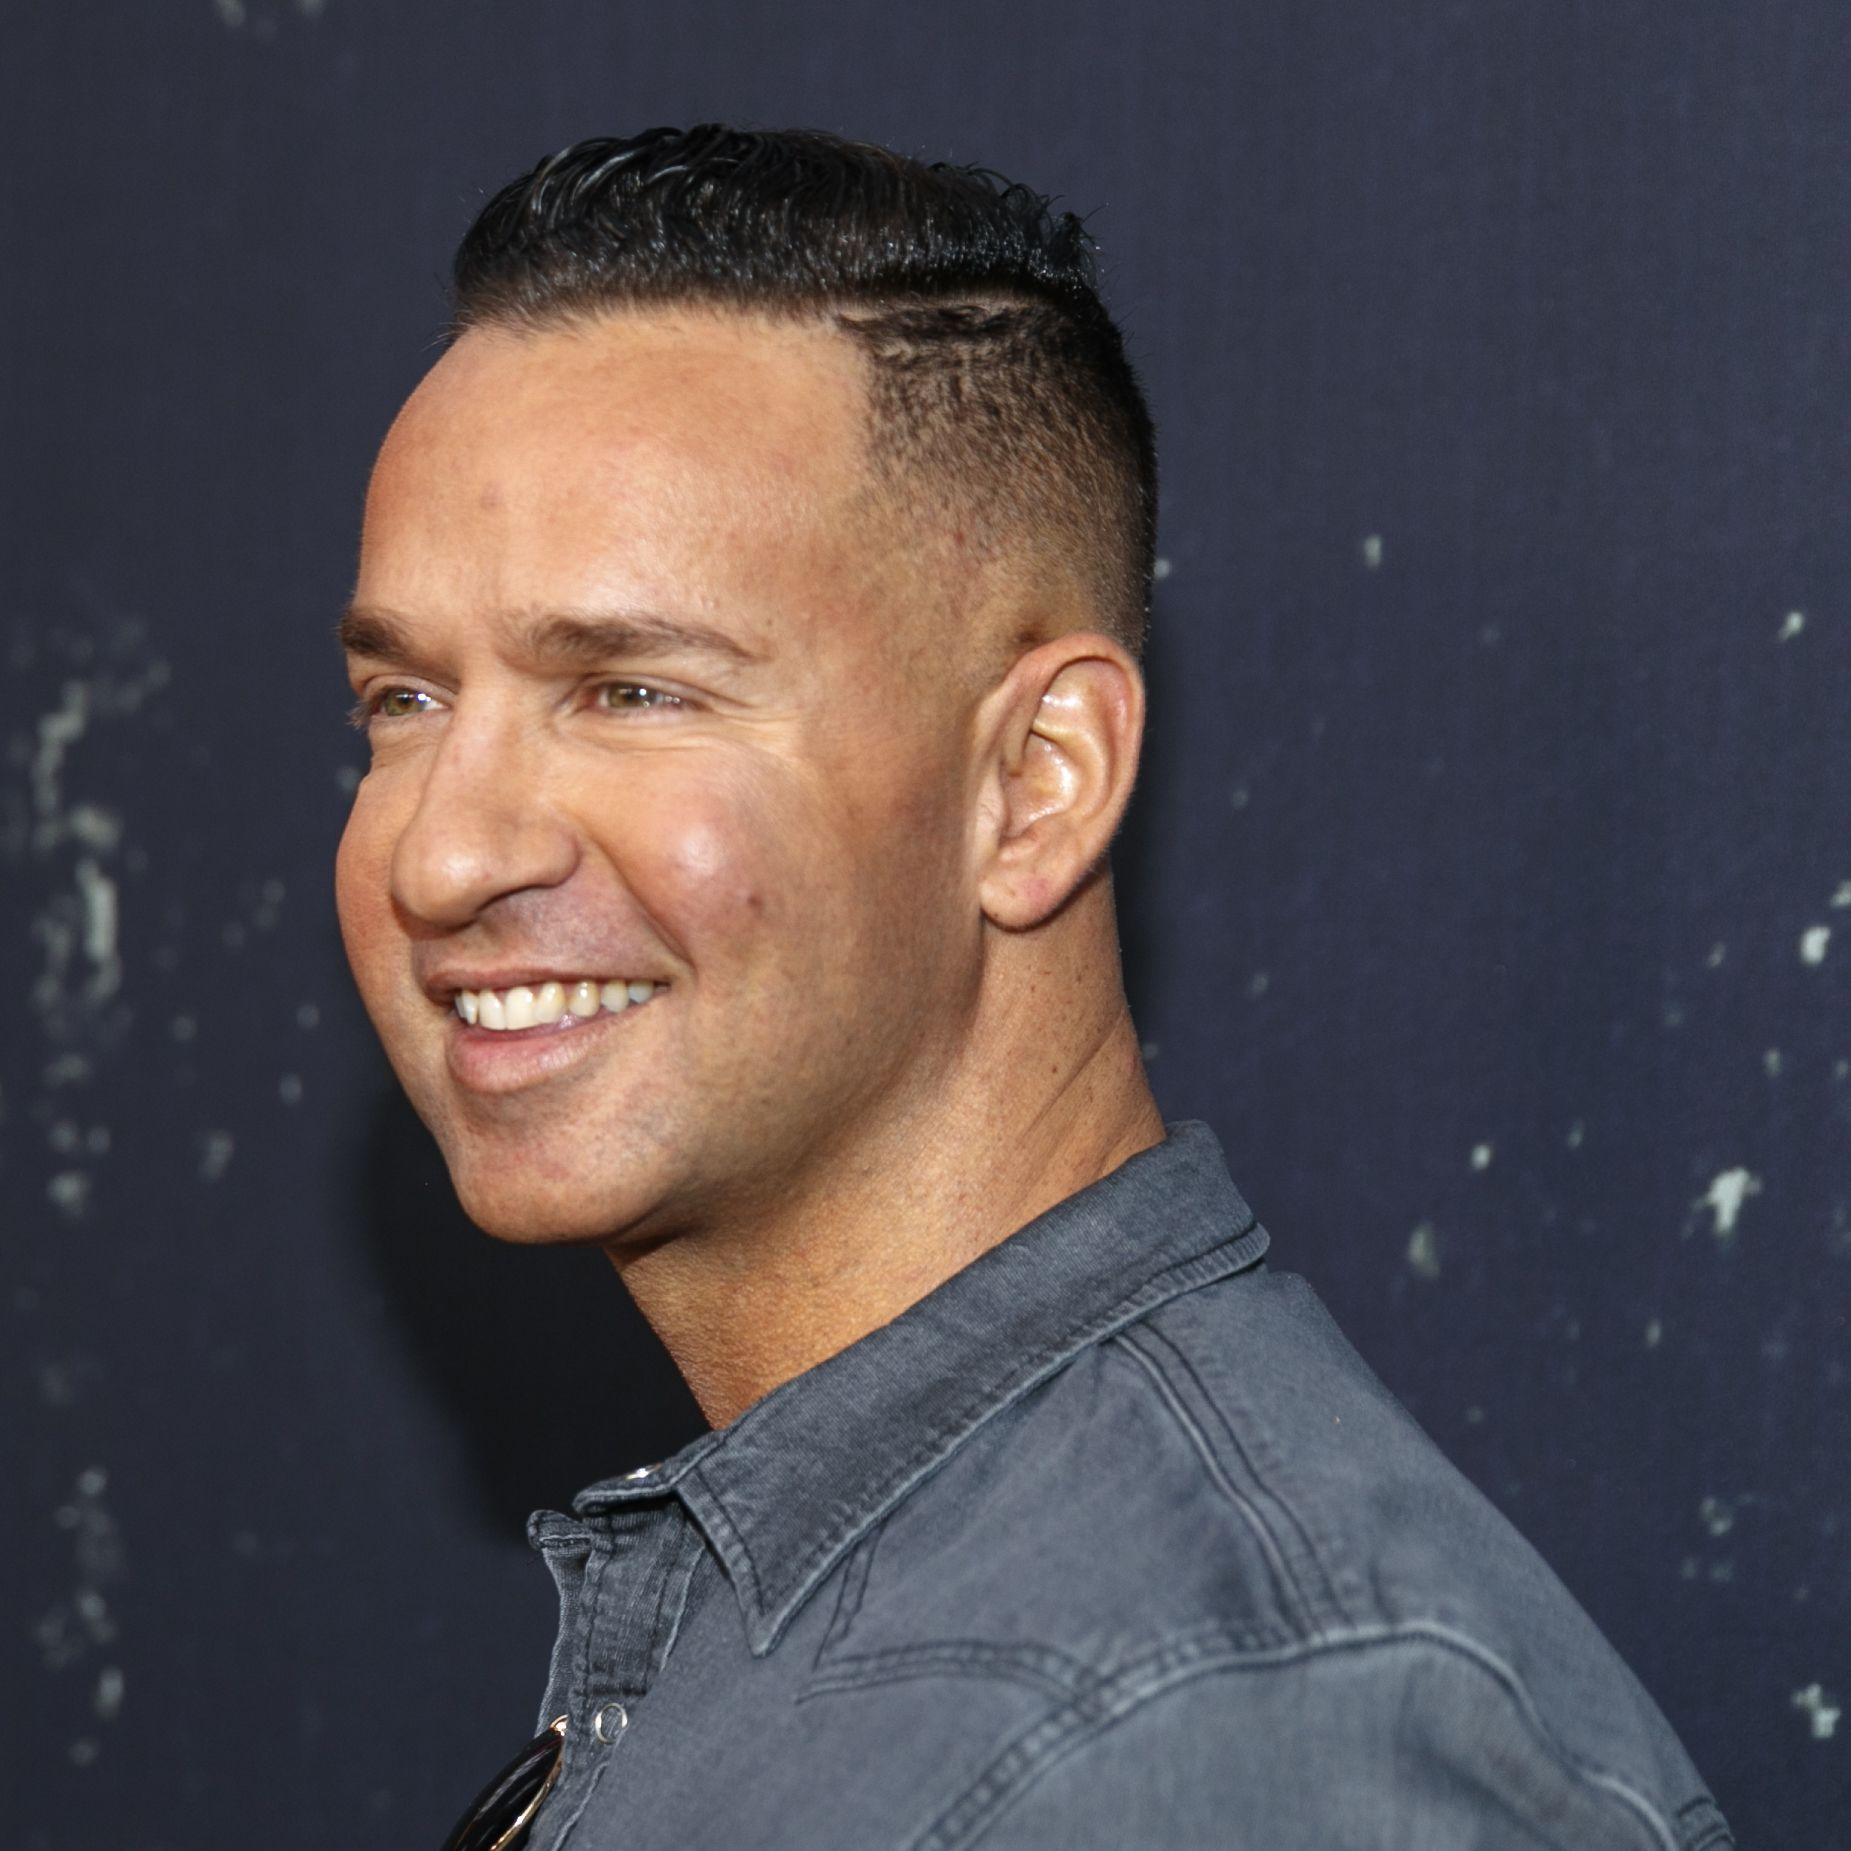 mike from jersey shore now